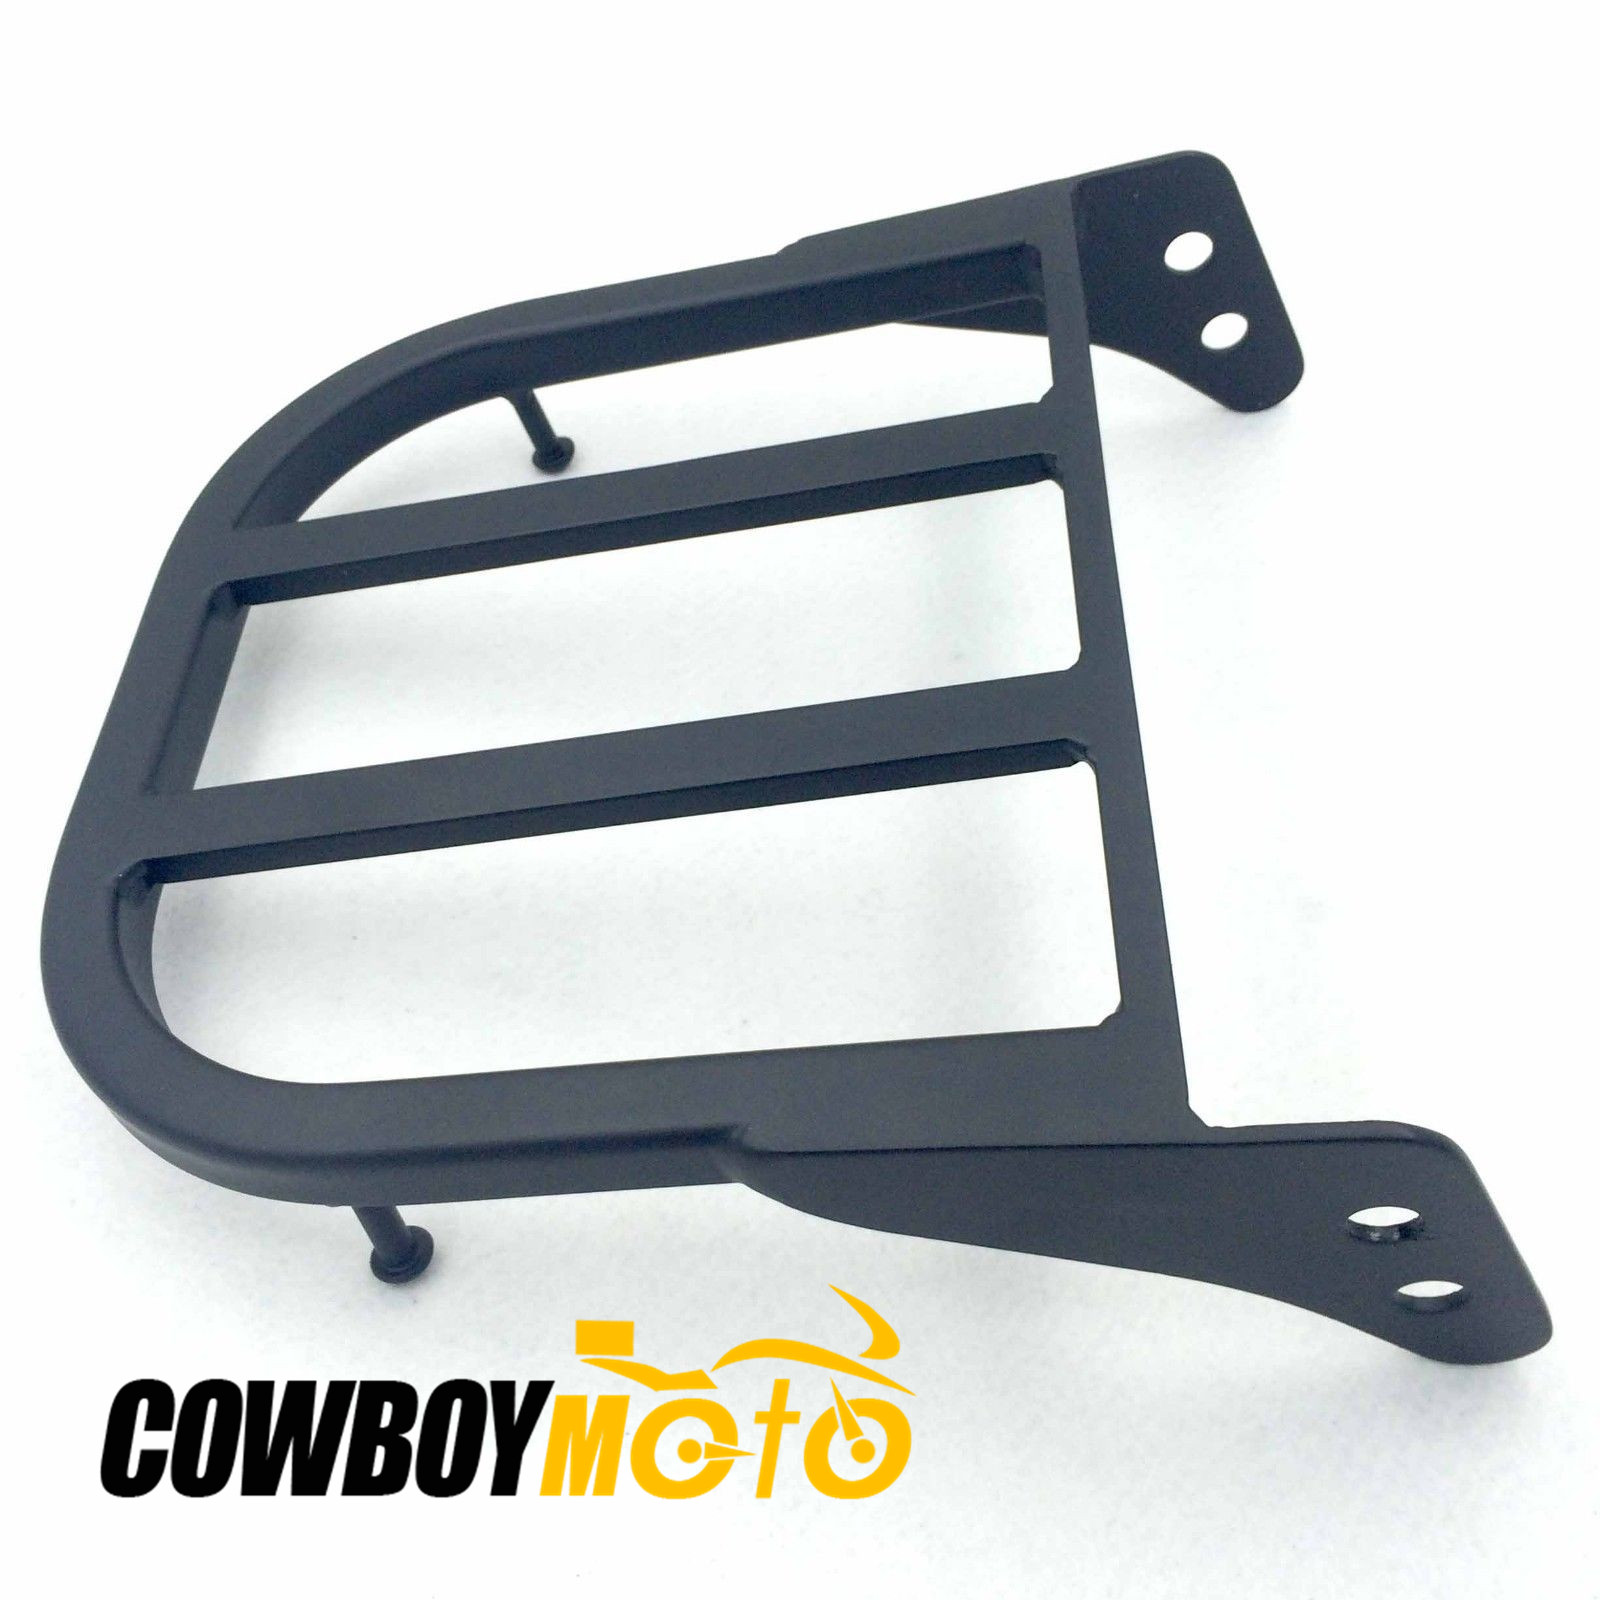 Black Sissy Bar Luggage Rack For Suzuki Marauder VZ800 / Boulevard C50 / C90 / C50 / M50 luggage